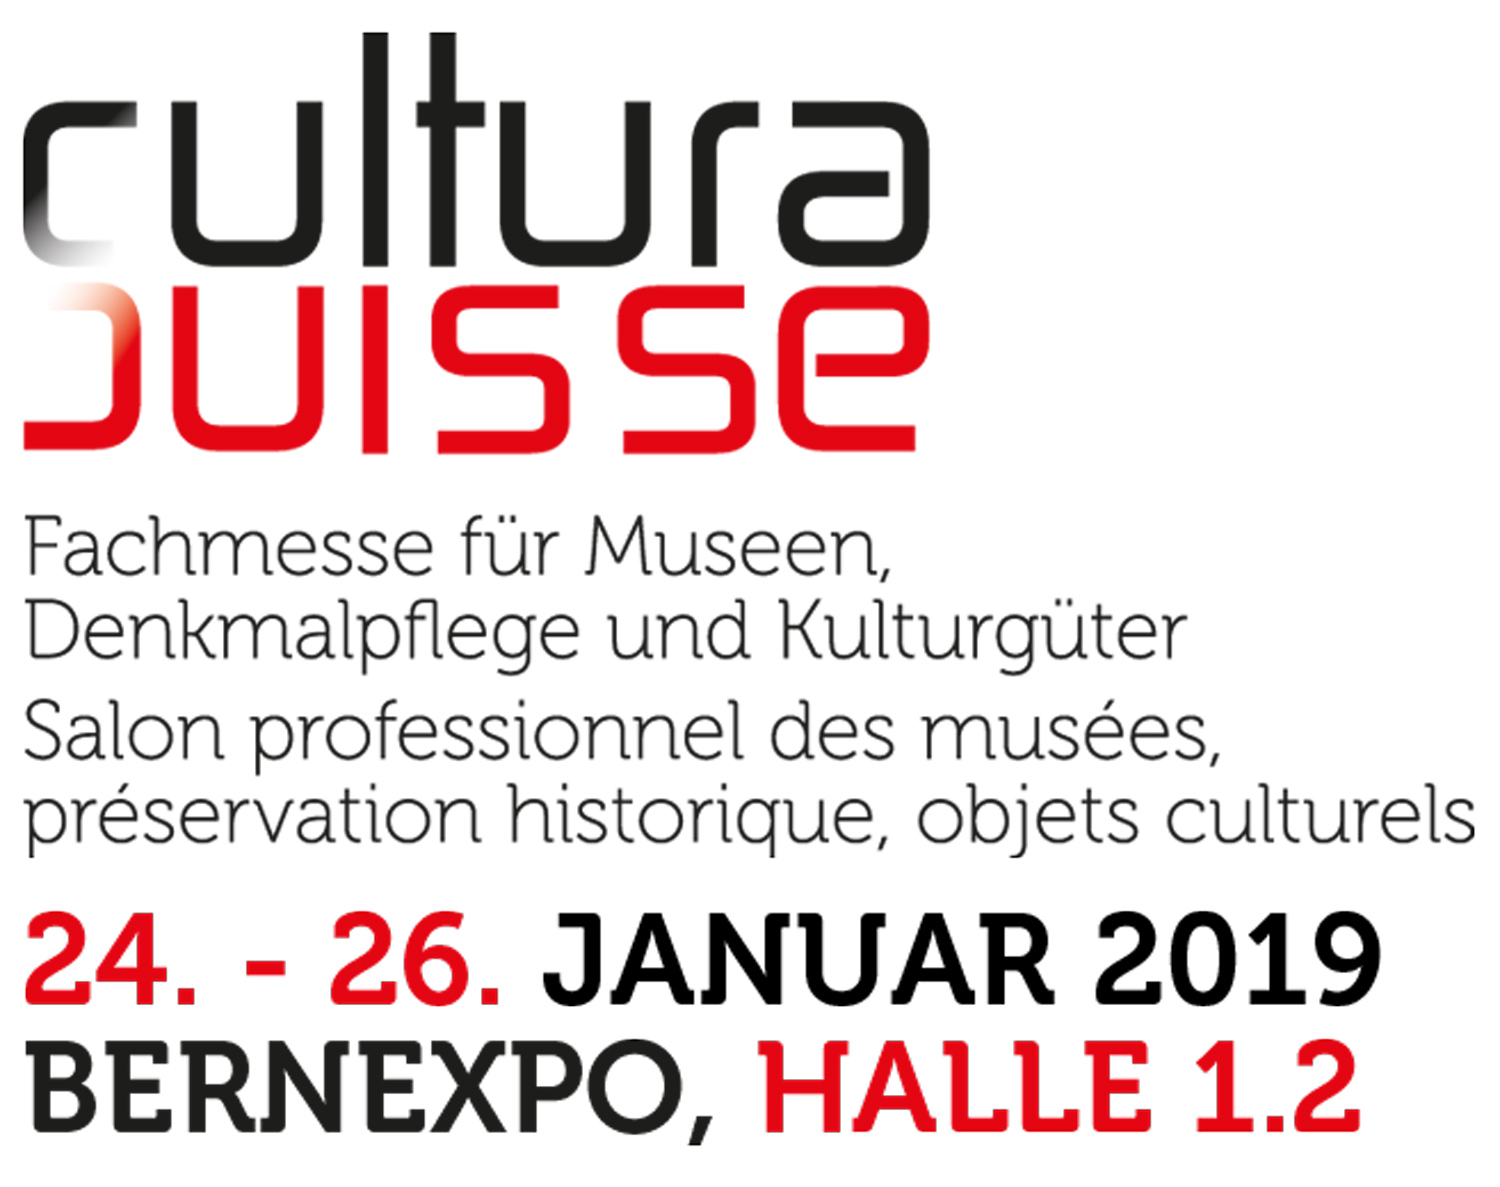 exhibitor at the CULTURA SUISSE 2019